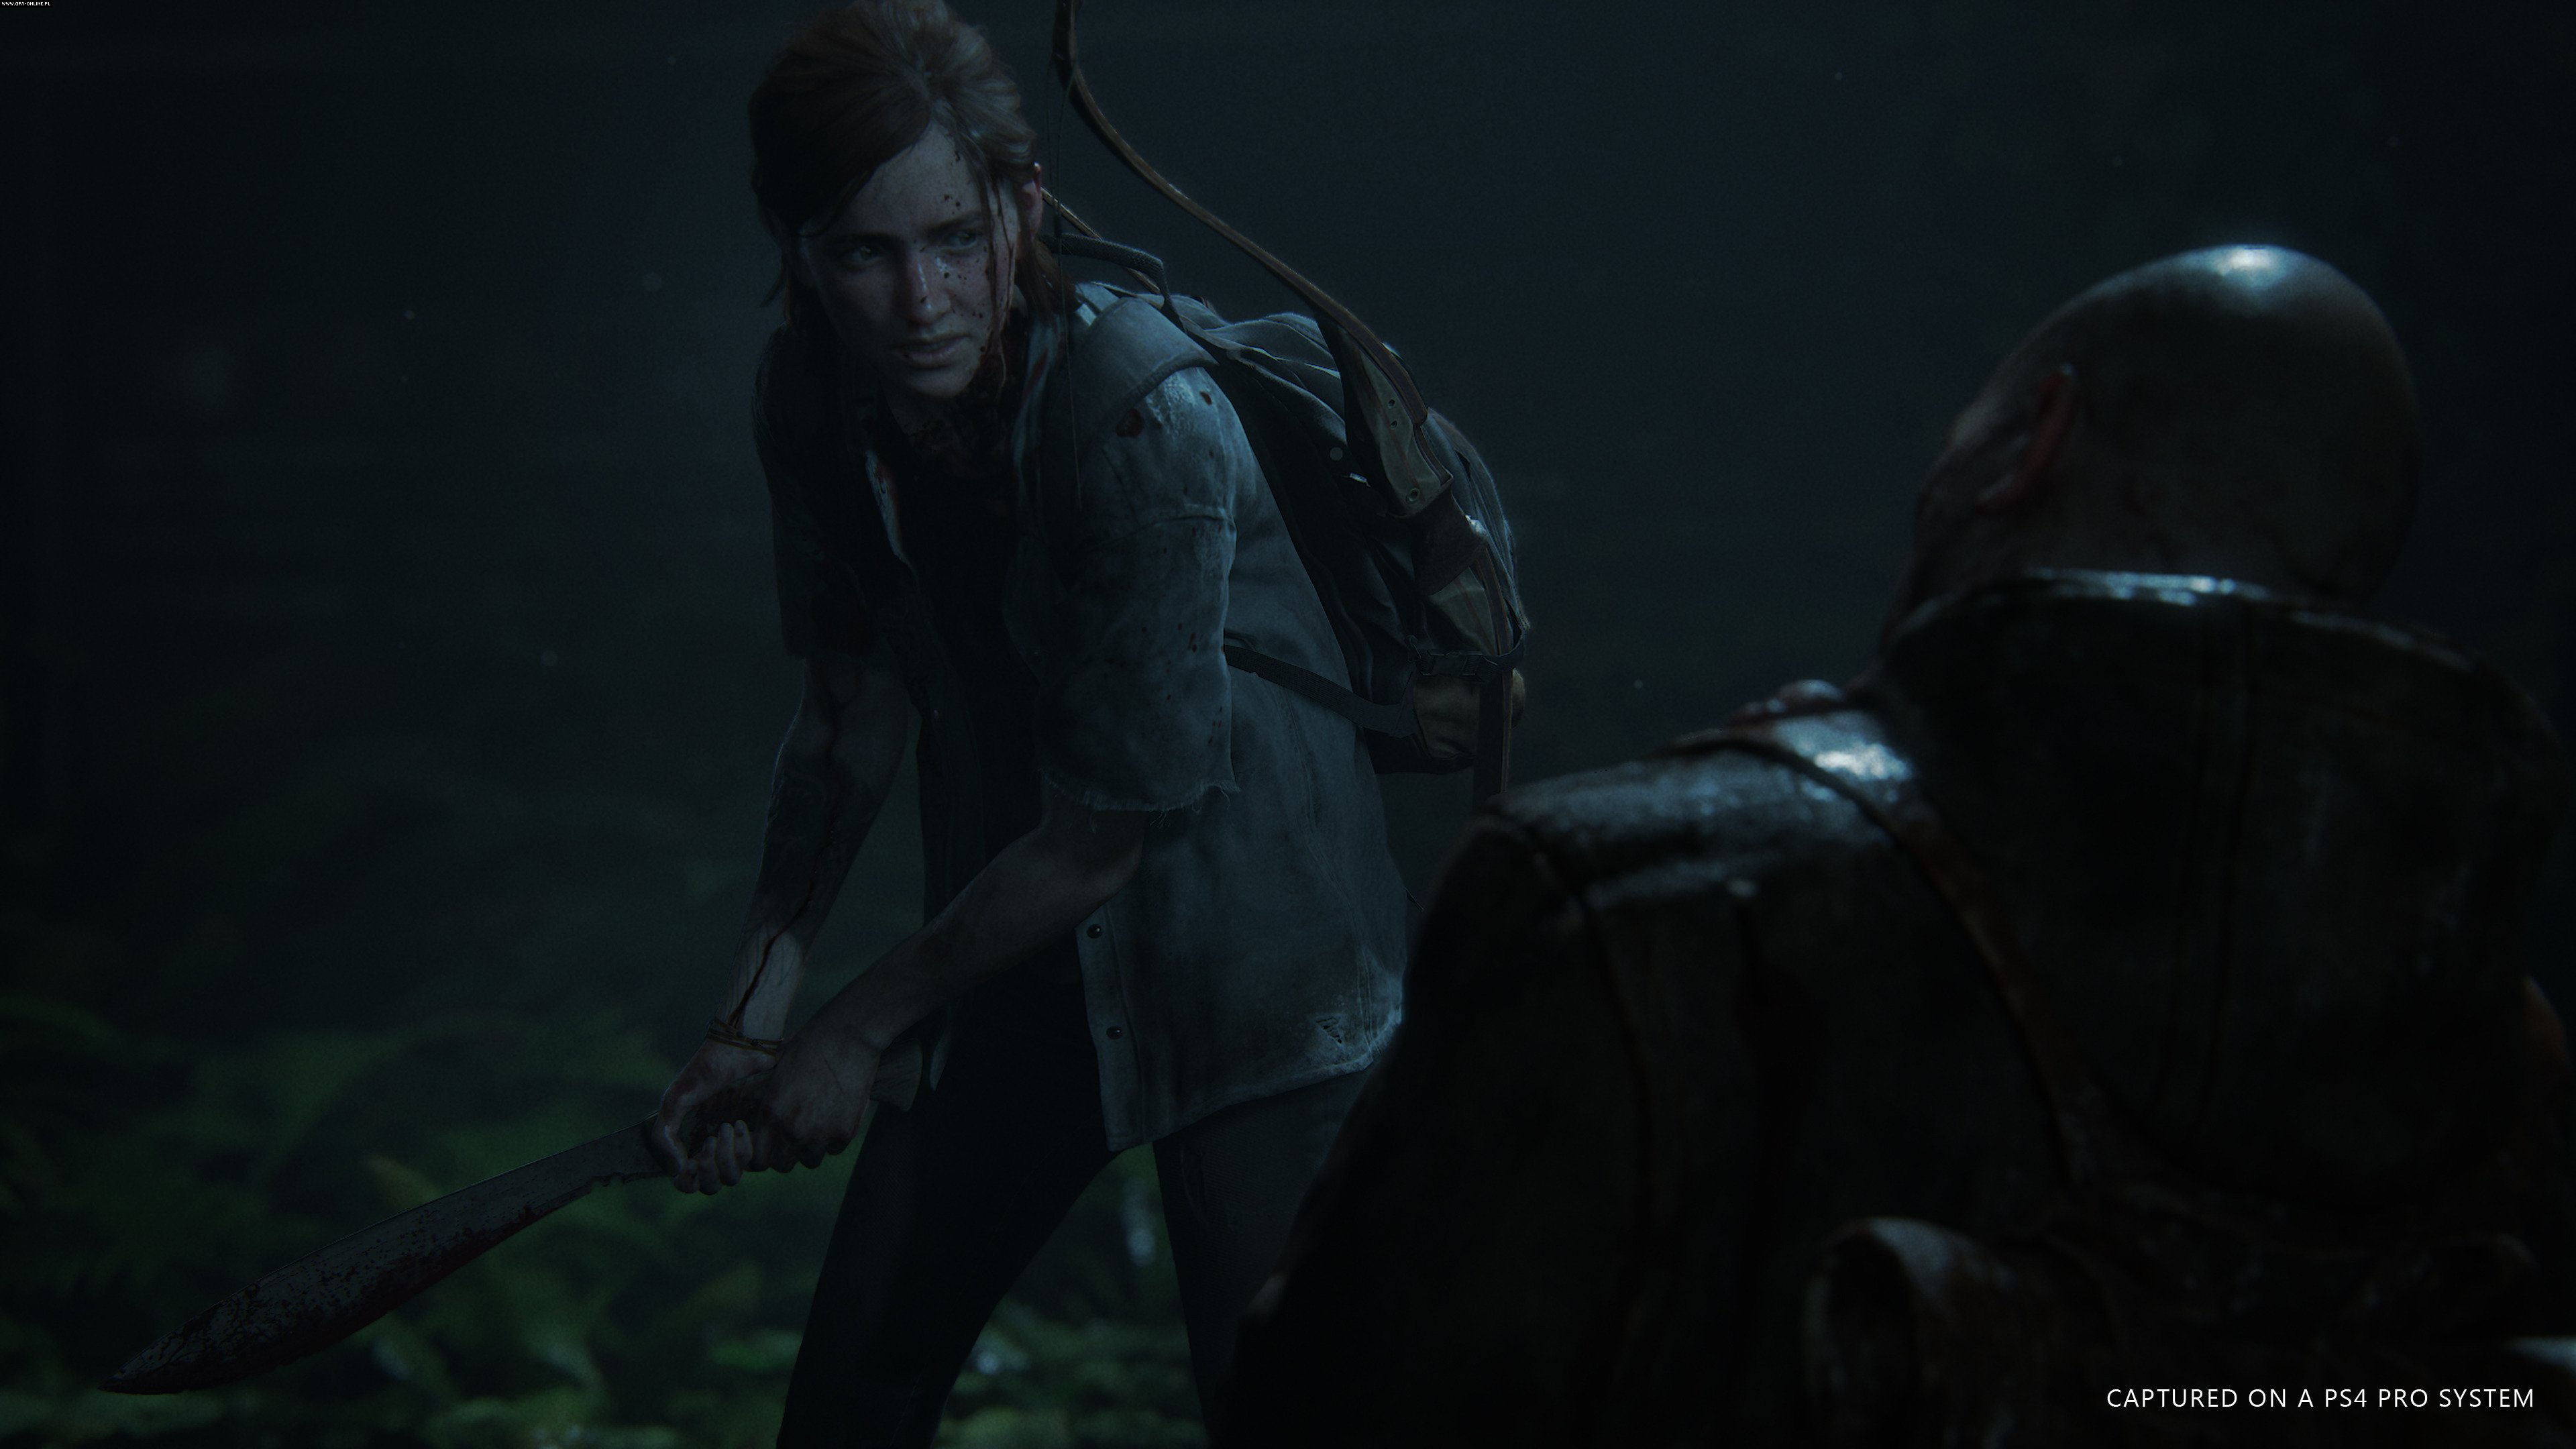 The Last of Us: Part II PS4 Gry Screen 10/30, Naughty Dog, Sony Interactive Entertainment